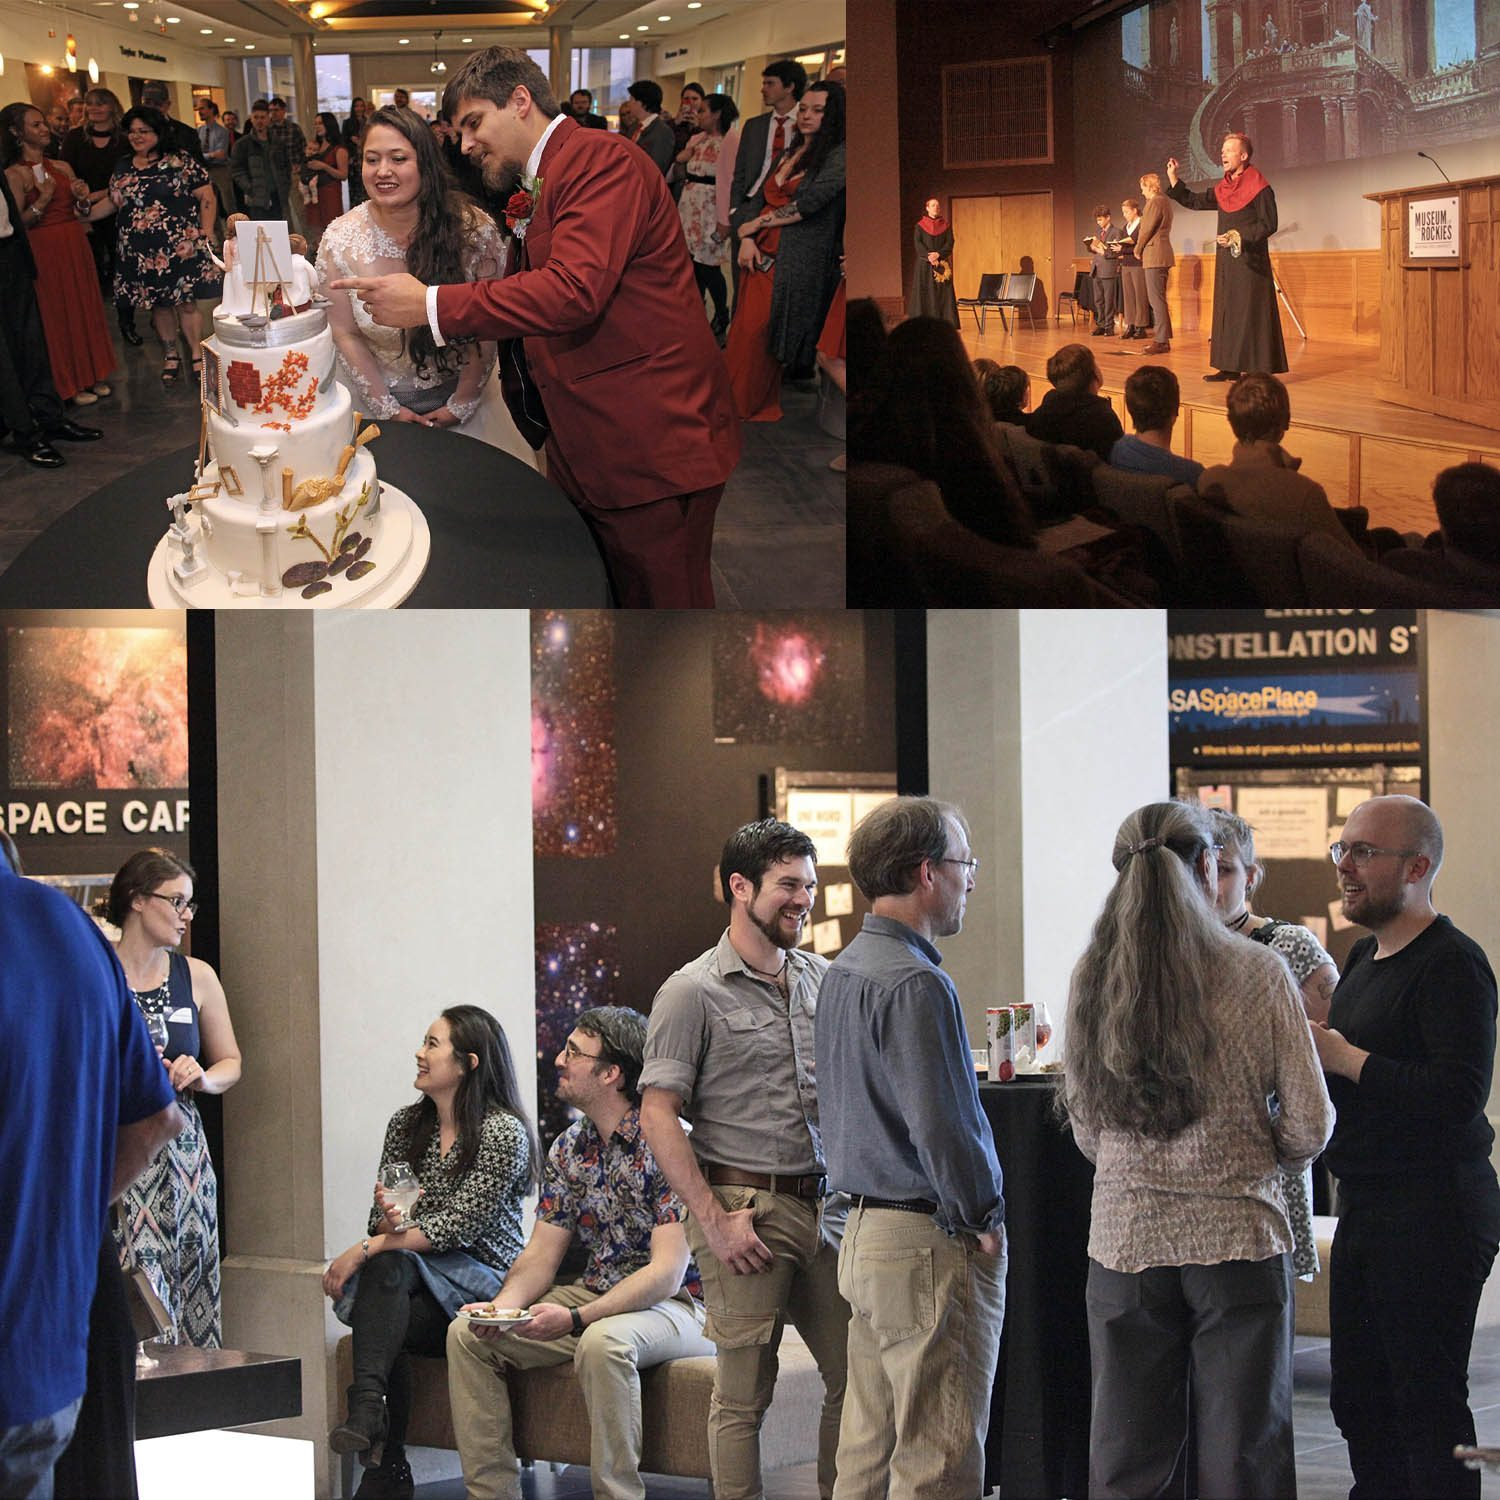 A collage of a couple looking at their wedding cake in the Bair Lobby, actors on the Hager Auditorium stage, and people mingling in the Bair Lobby